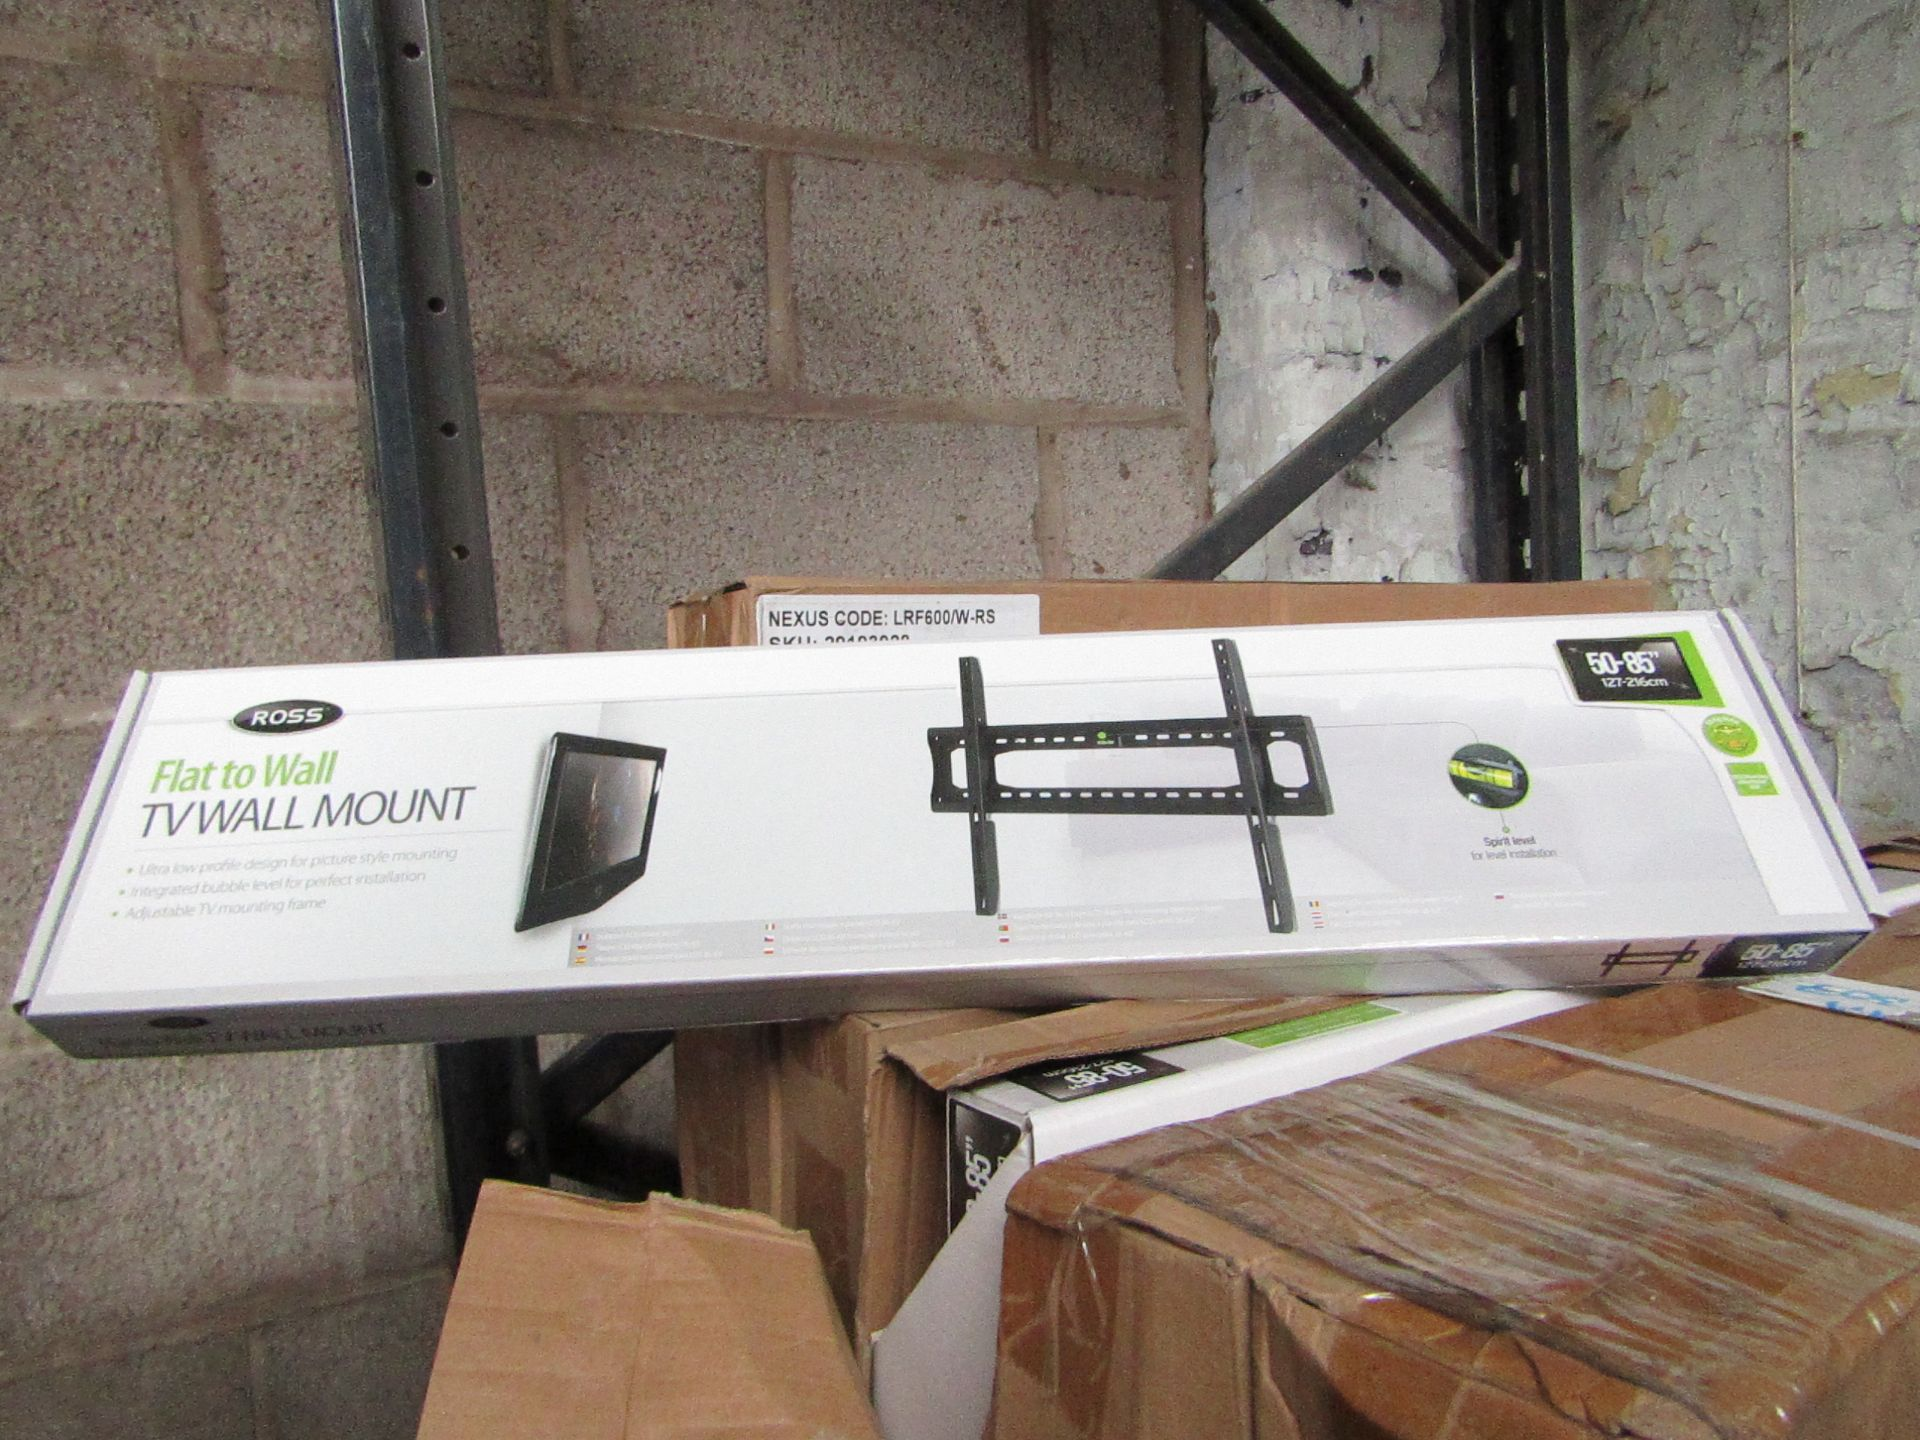 "Lot 182 - 2x Ross - Flat to Wall TV Mount 50 - 85"" - New & Boxed."